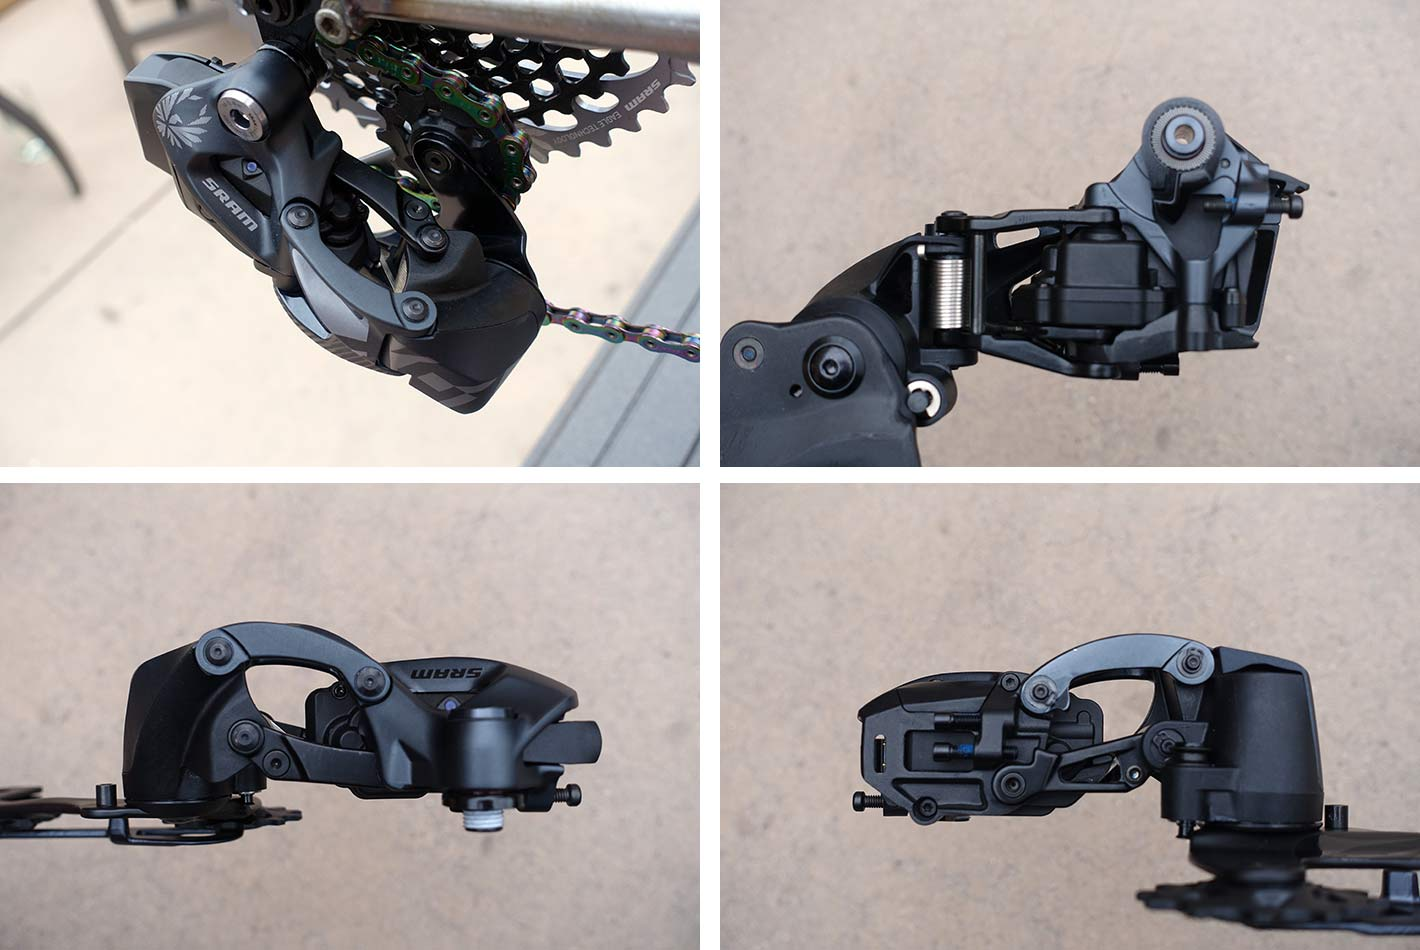 how does the sram eagle etap axs wireless mountain bike shifter and derailleur work